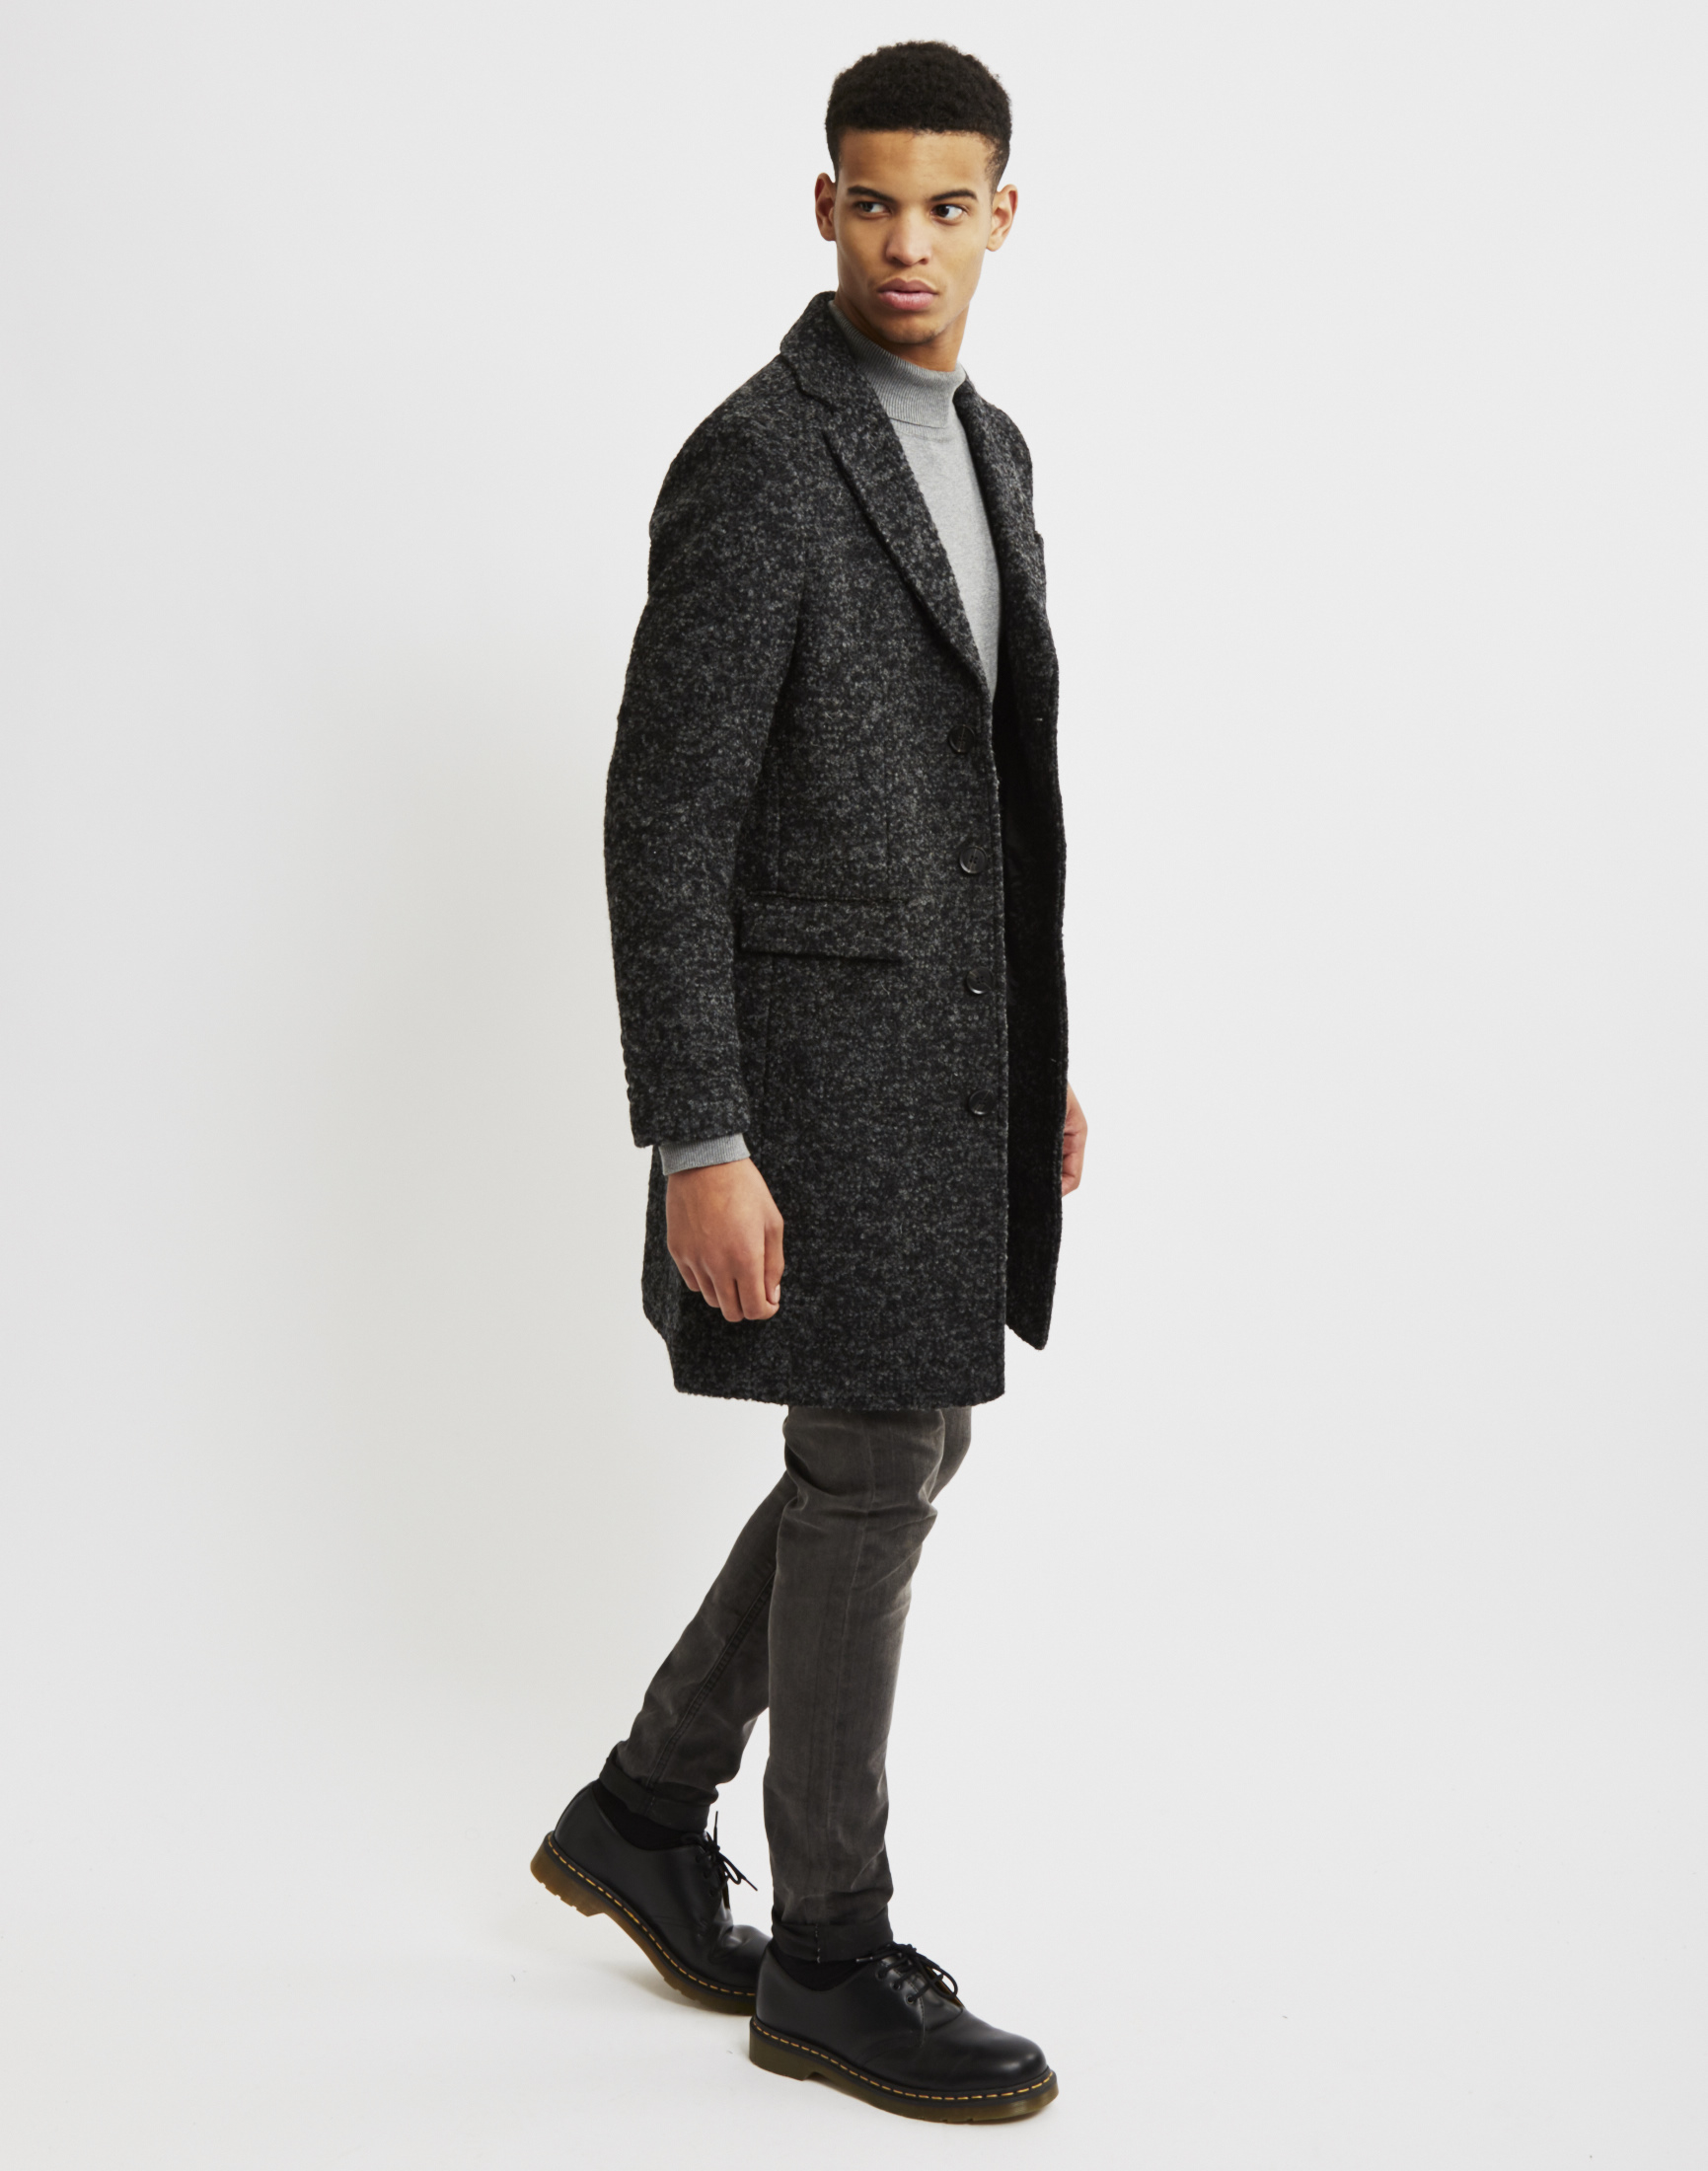 Selected Naples Wool Coat in Black for Men | Lyst